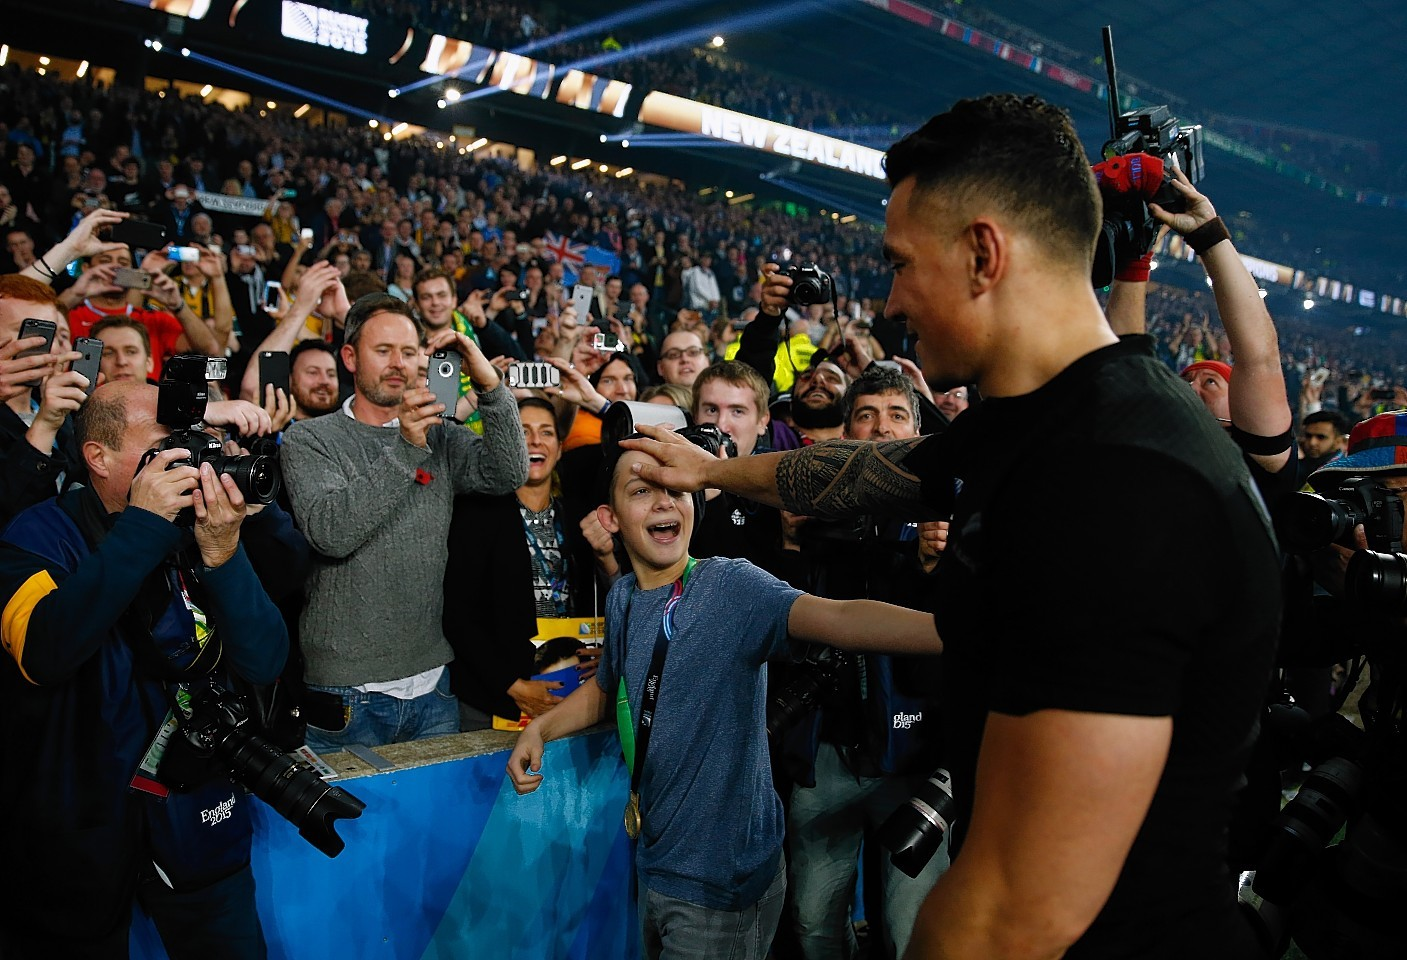 LONDON, ENGLAND - OCTOBER 31:  Sonny Bill Williams of New Zealand gives his winners medal to a young fan following the 2015 Rugby World Cup Final match between New Zealand and Australia at Twickenham Stadium on October 31, 2015 in London, United Kingdom.  (Photo by Mike Hewitt/Getty Images)